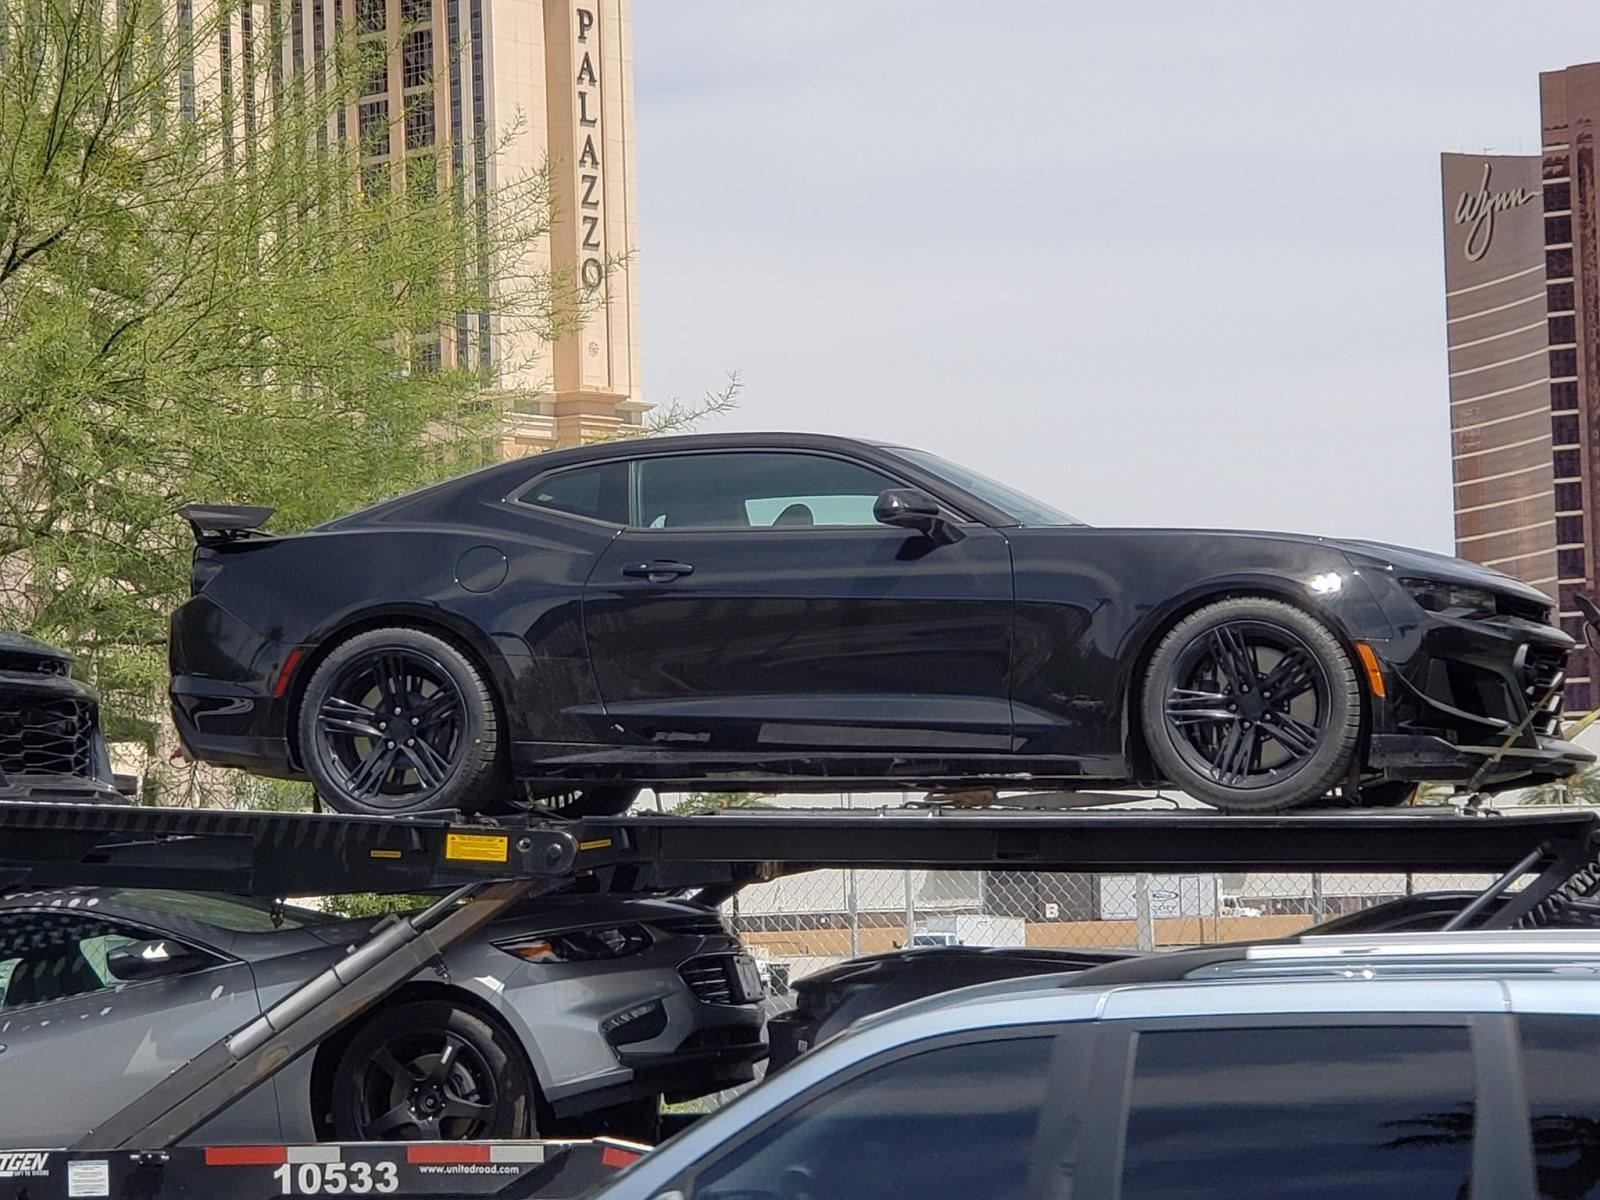 2019 Chevrolet Camaro Zl1 Caught Completely Undisguised